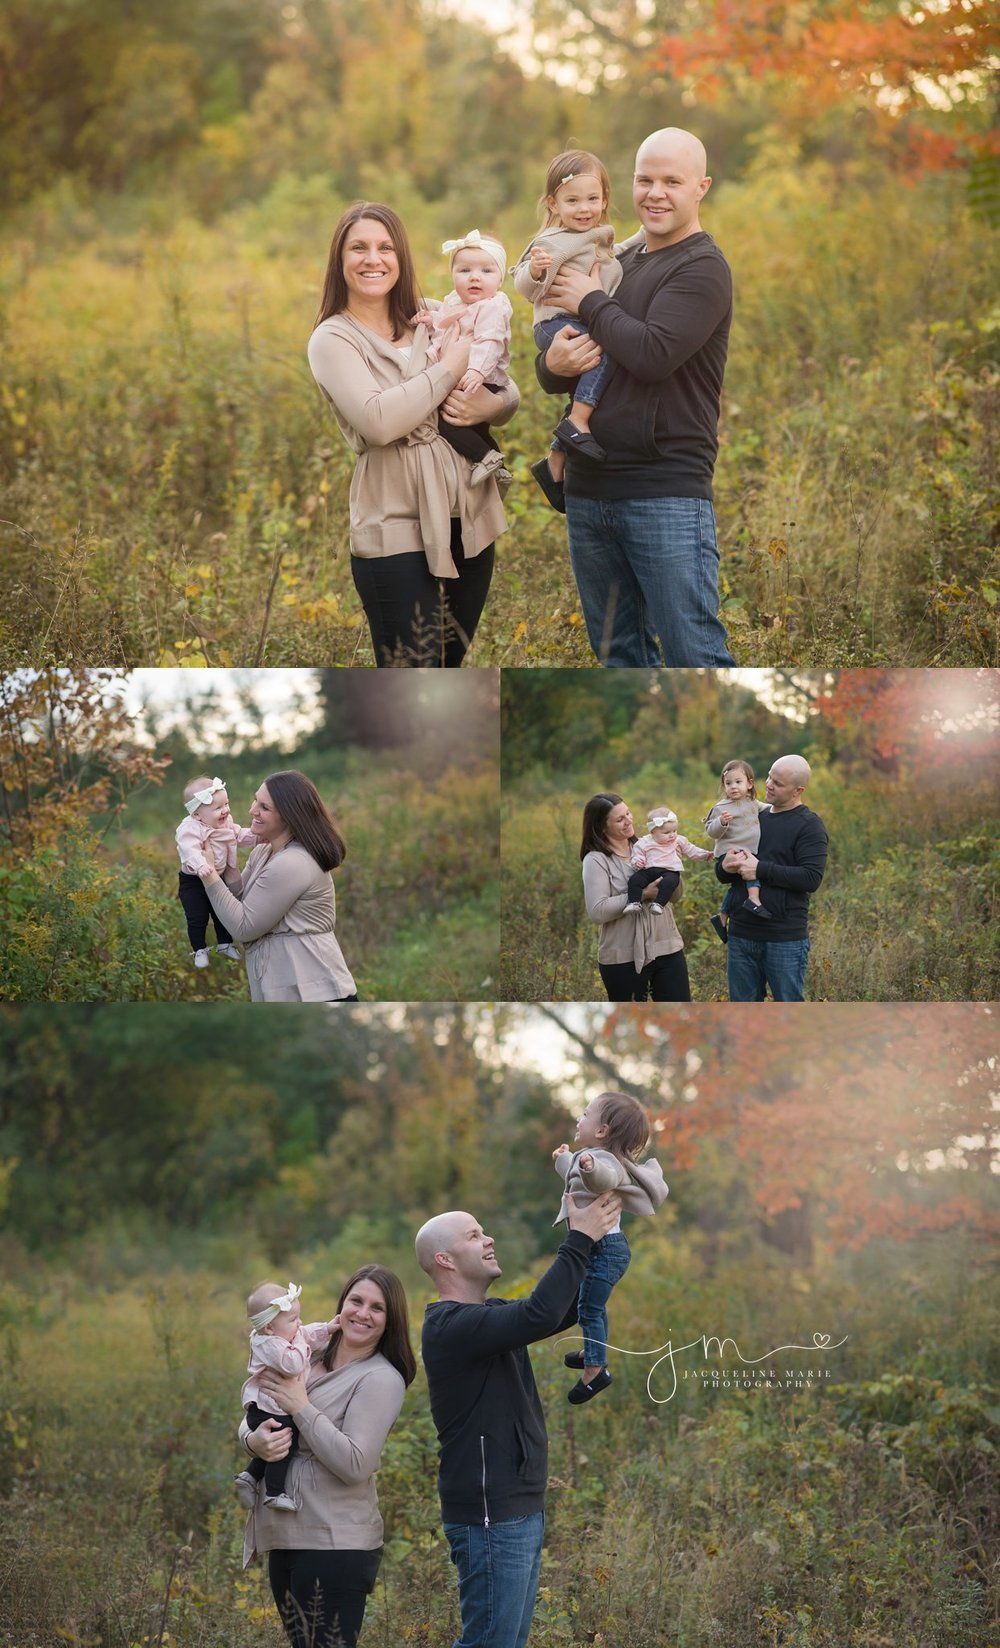 Columbus-Ohio-family-holds-children-for-outdoor-family-session-by-JacquelineMariePhotography